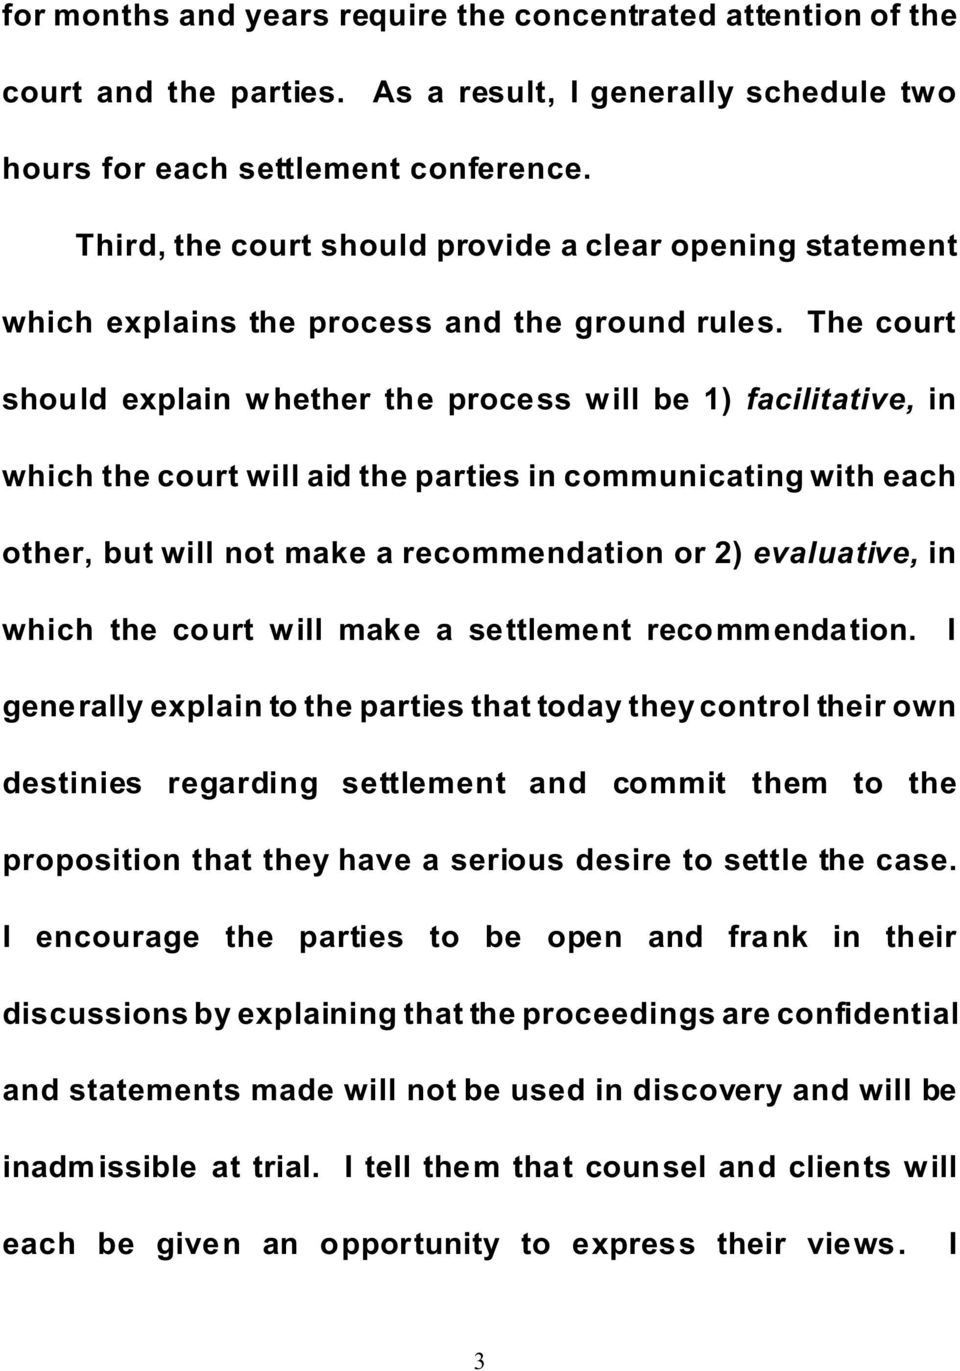 The court should explain whether the process will be 1) facilitative, in which the court will aid the parties in communicating with each other, but will not make a recommendation or 2) evaluative, in